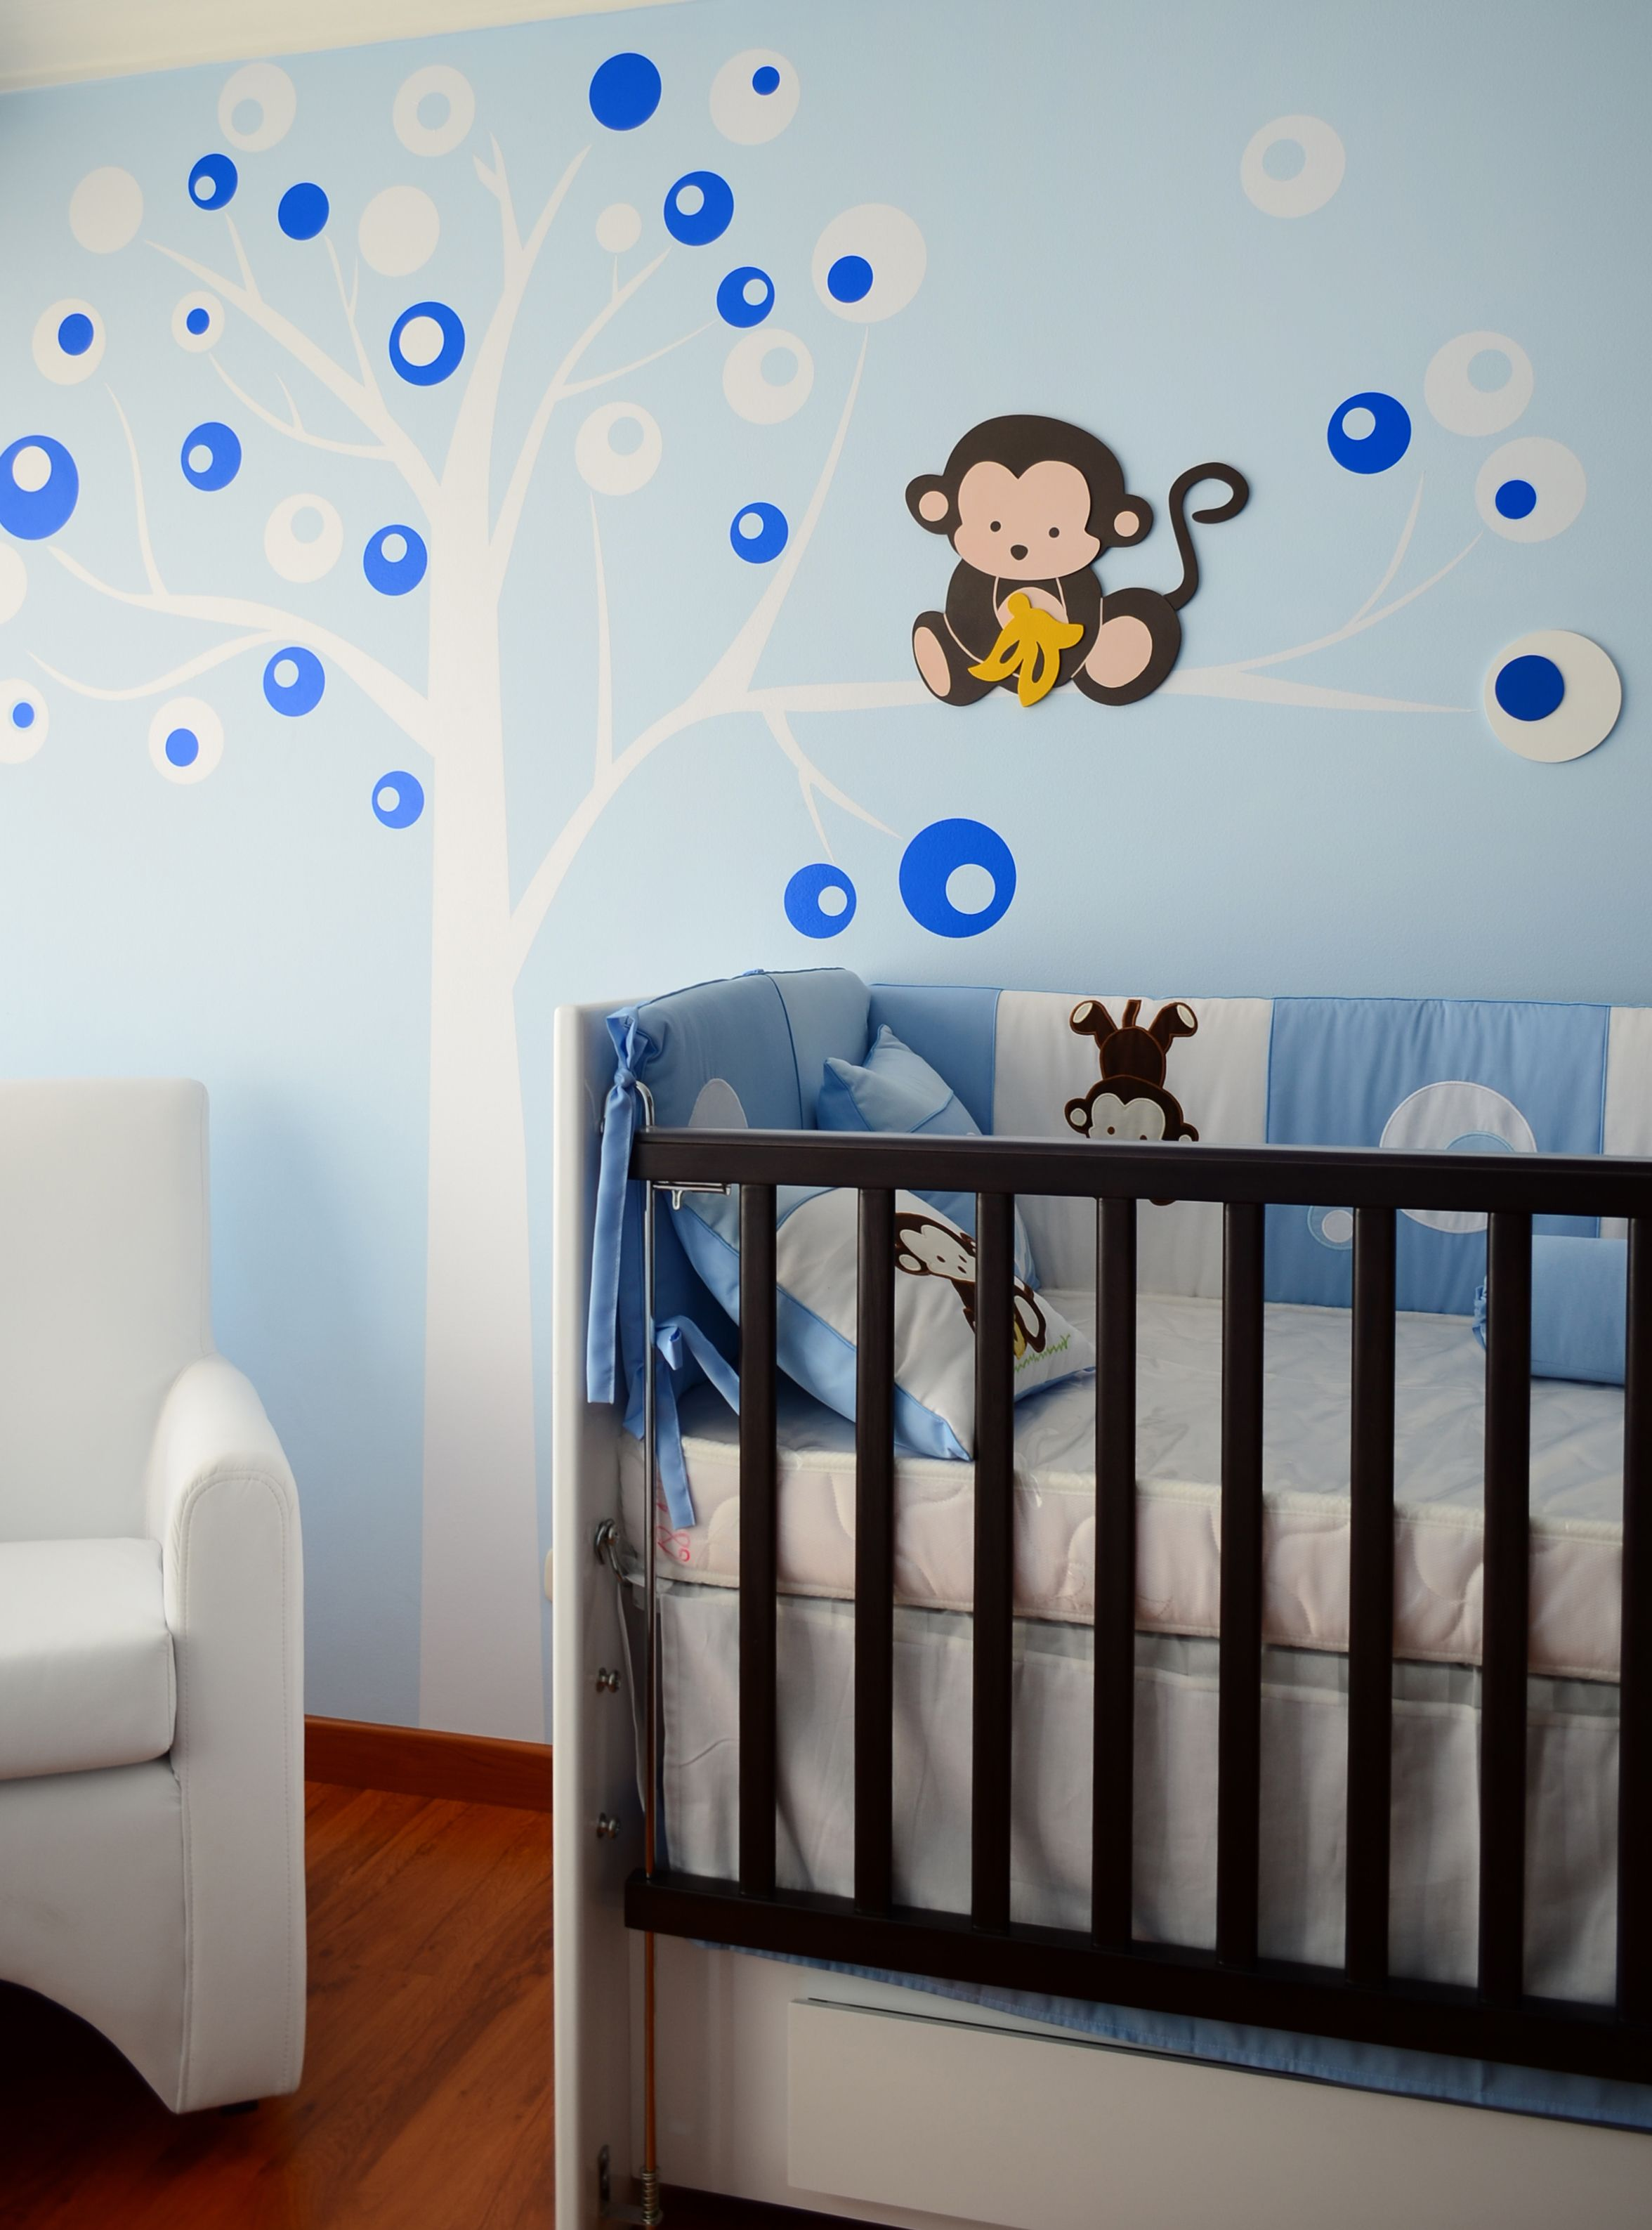 Monito para pared bebe baby romms deco in 2019 cuartos for Decoraciones para piezas